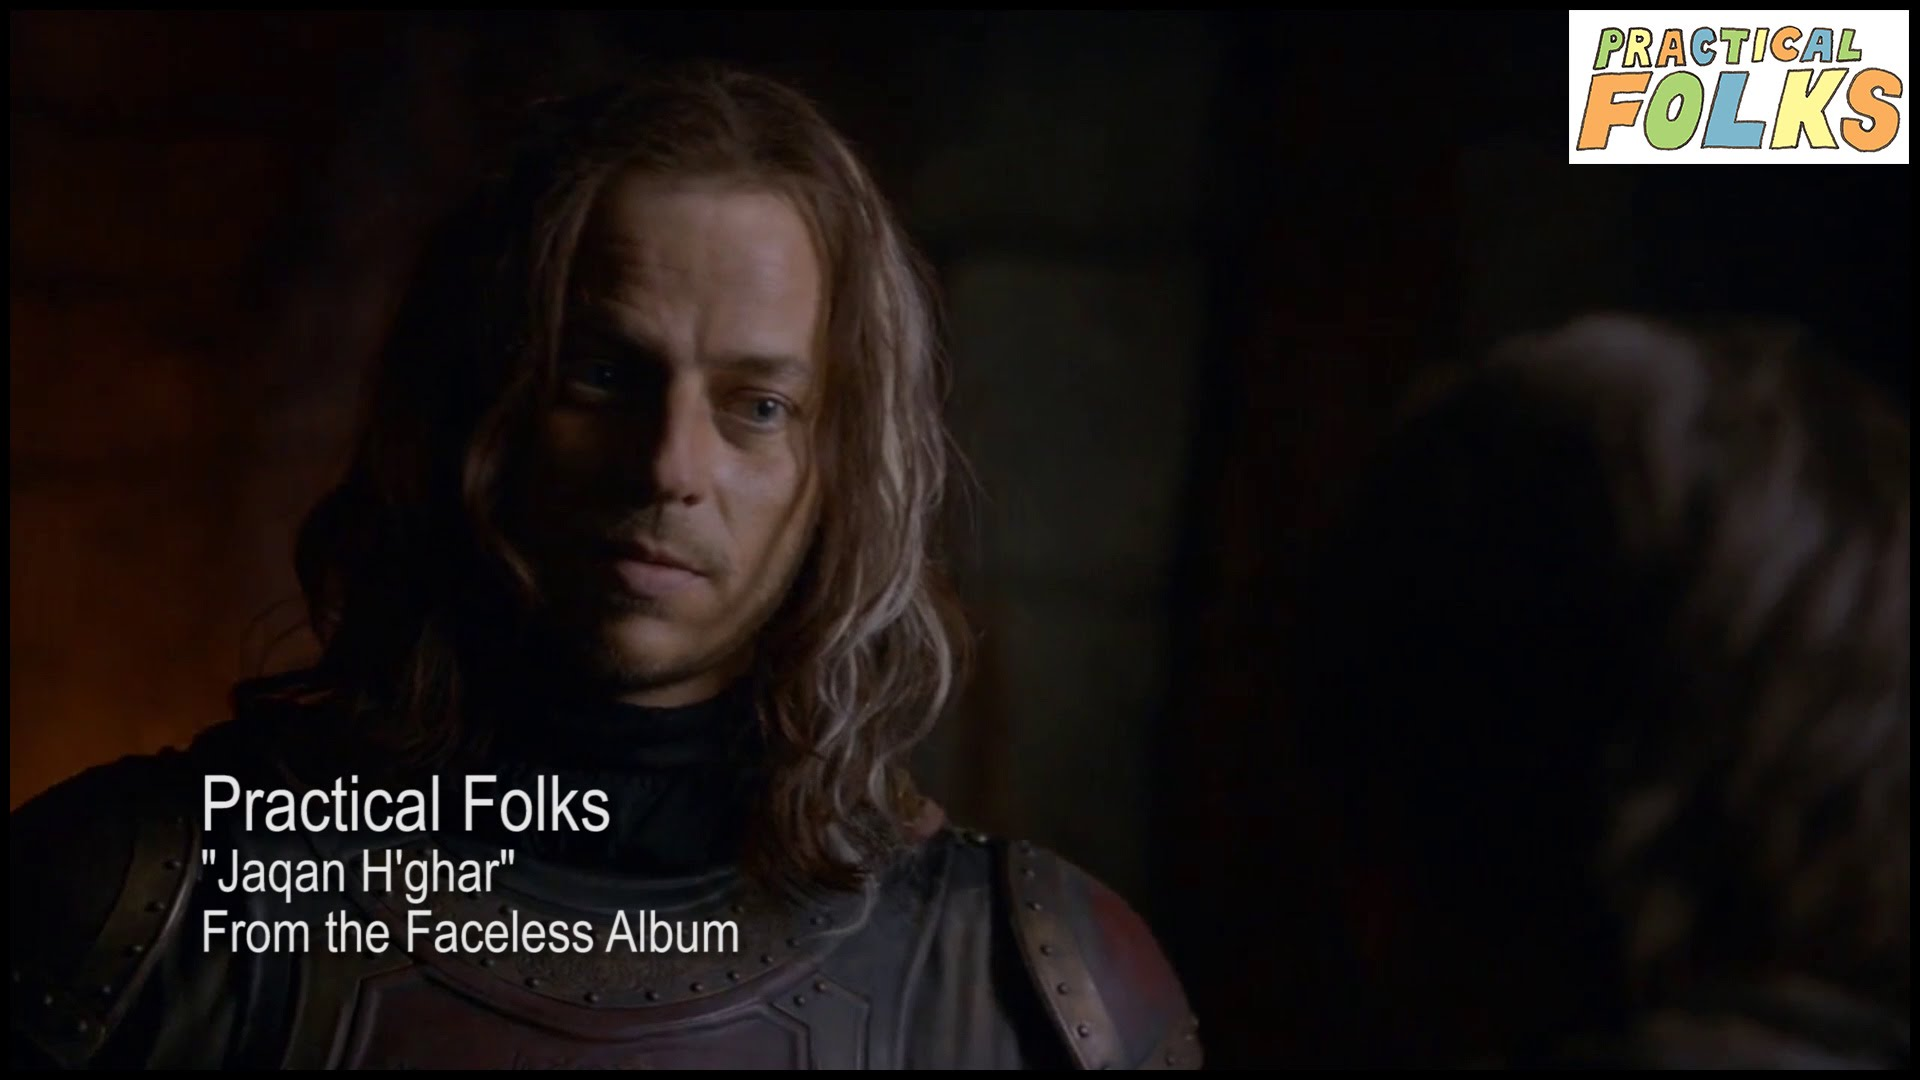 A Parody of the 'Unbreakable Kimmy Schmidt' Song 'Pinot Noir' About the 'Game of Thrones' Character Jaqen H'ghar